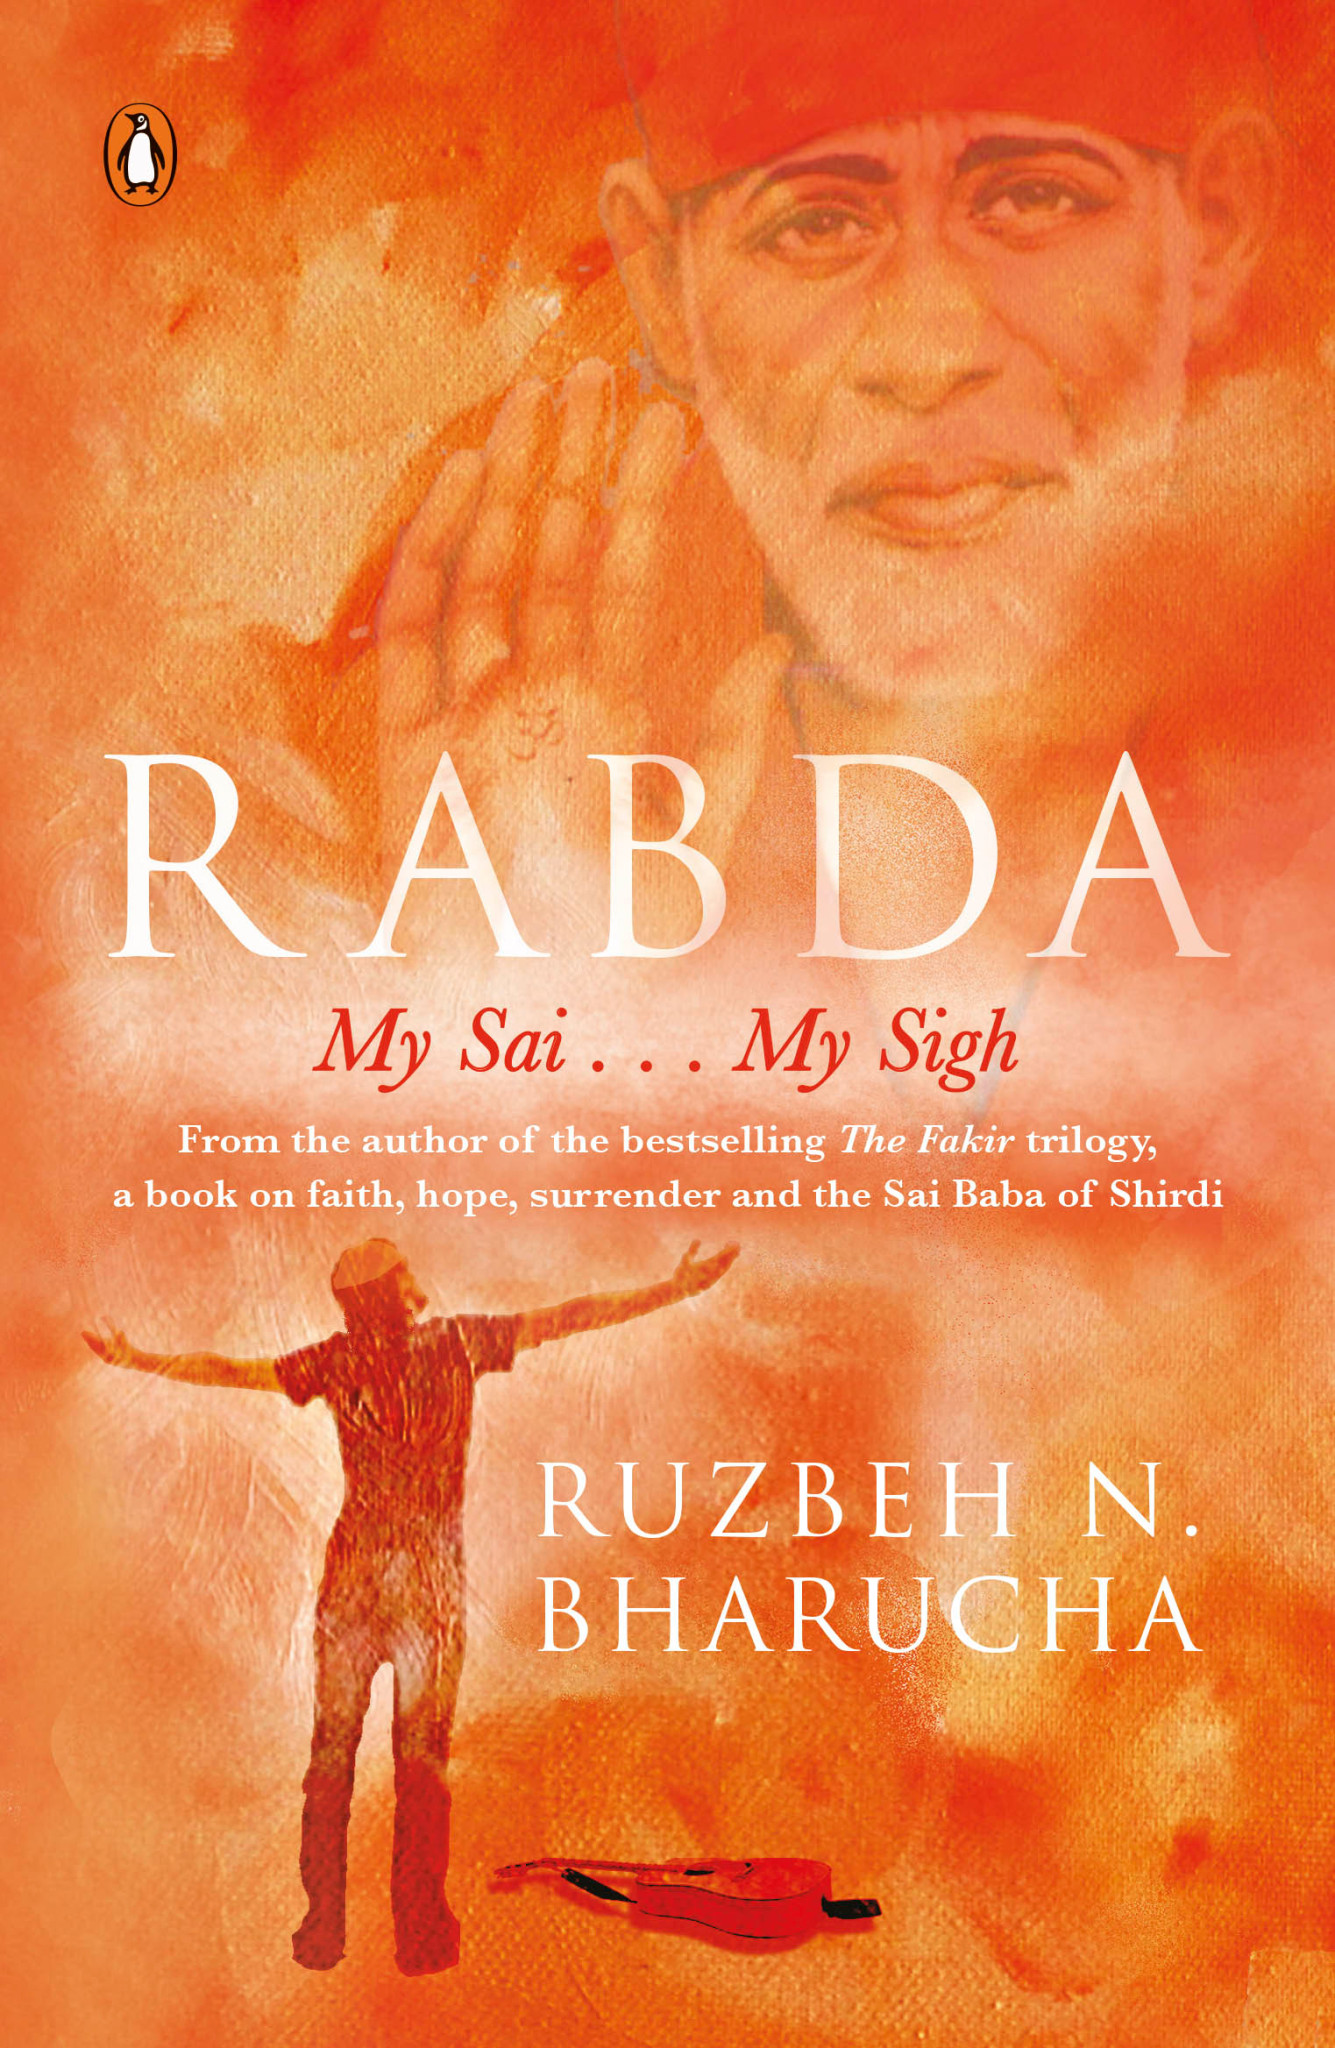 A spiritual treat in the form of a book, Not just for Sai devotees but for everyone